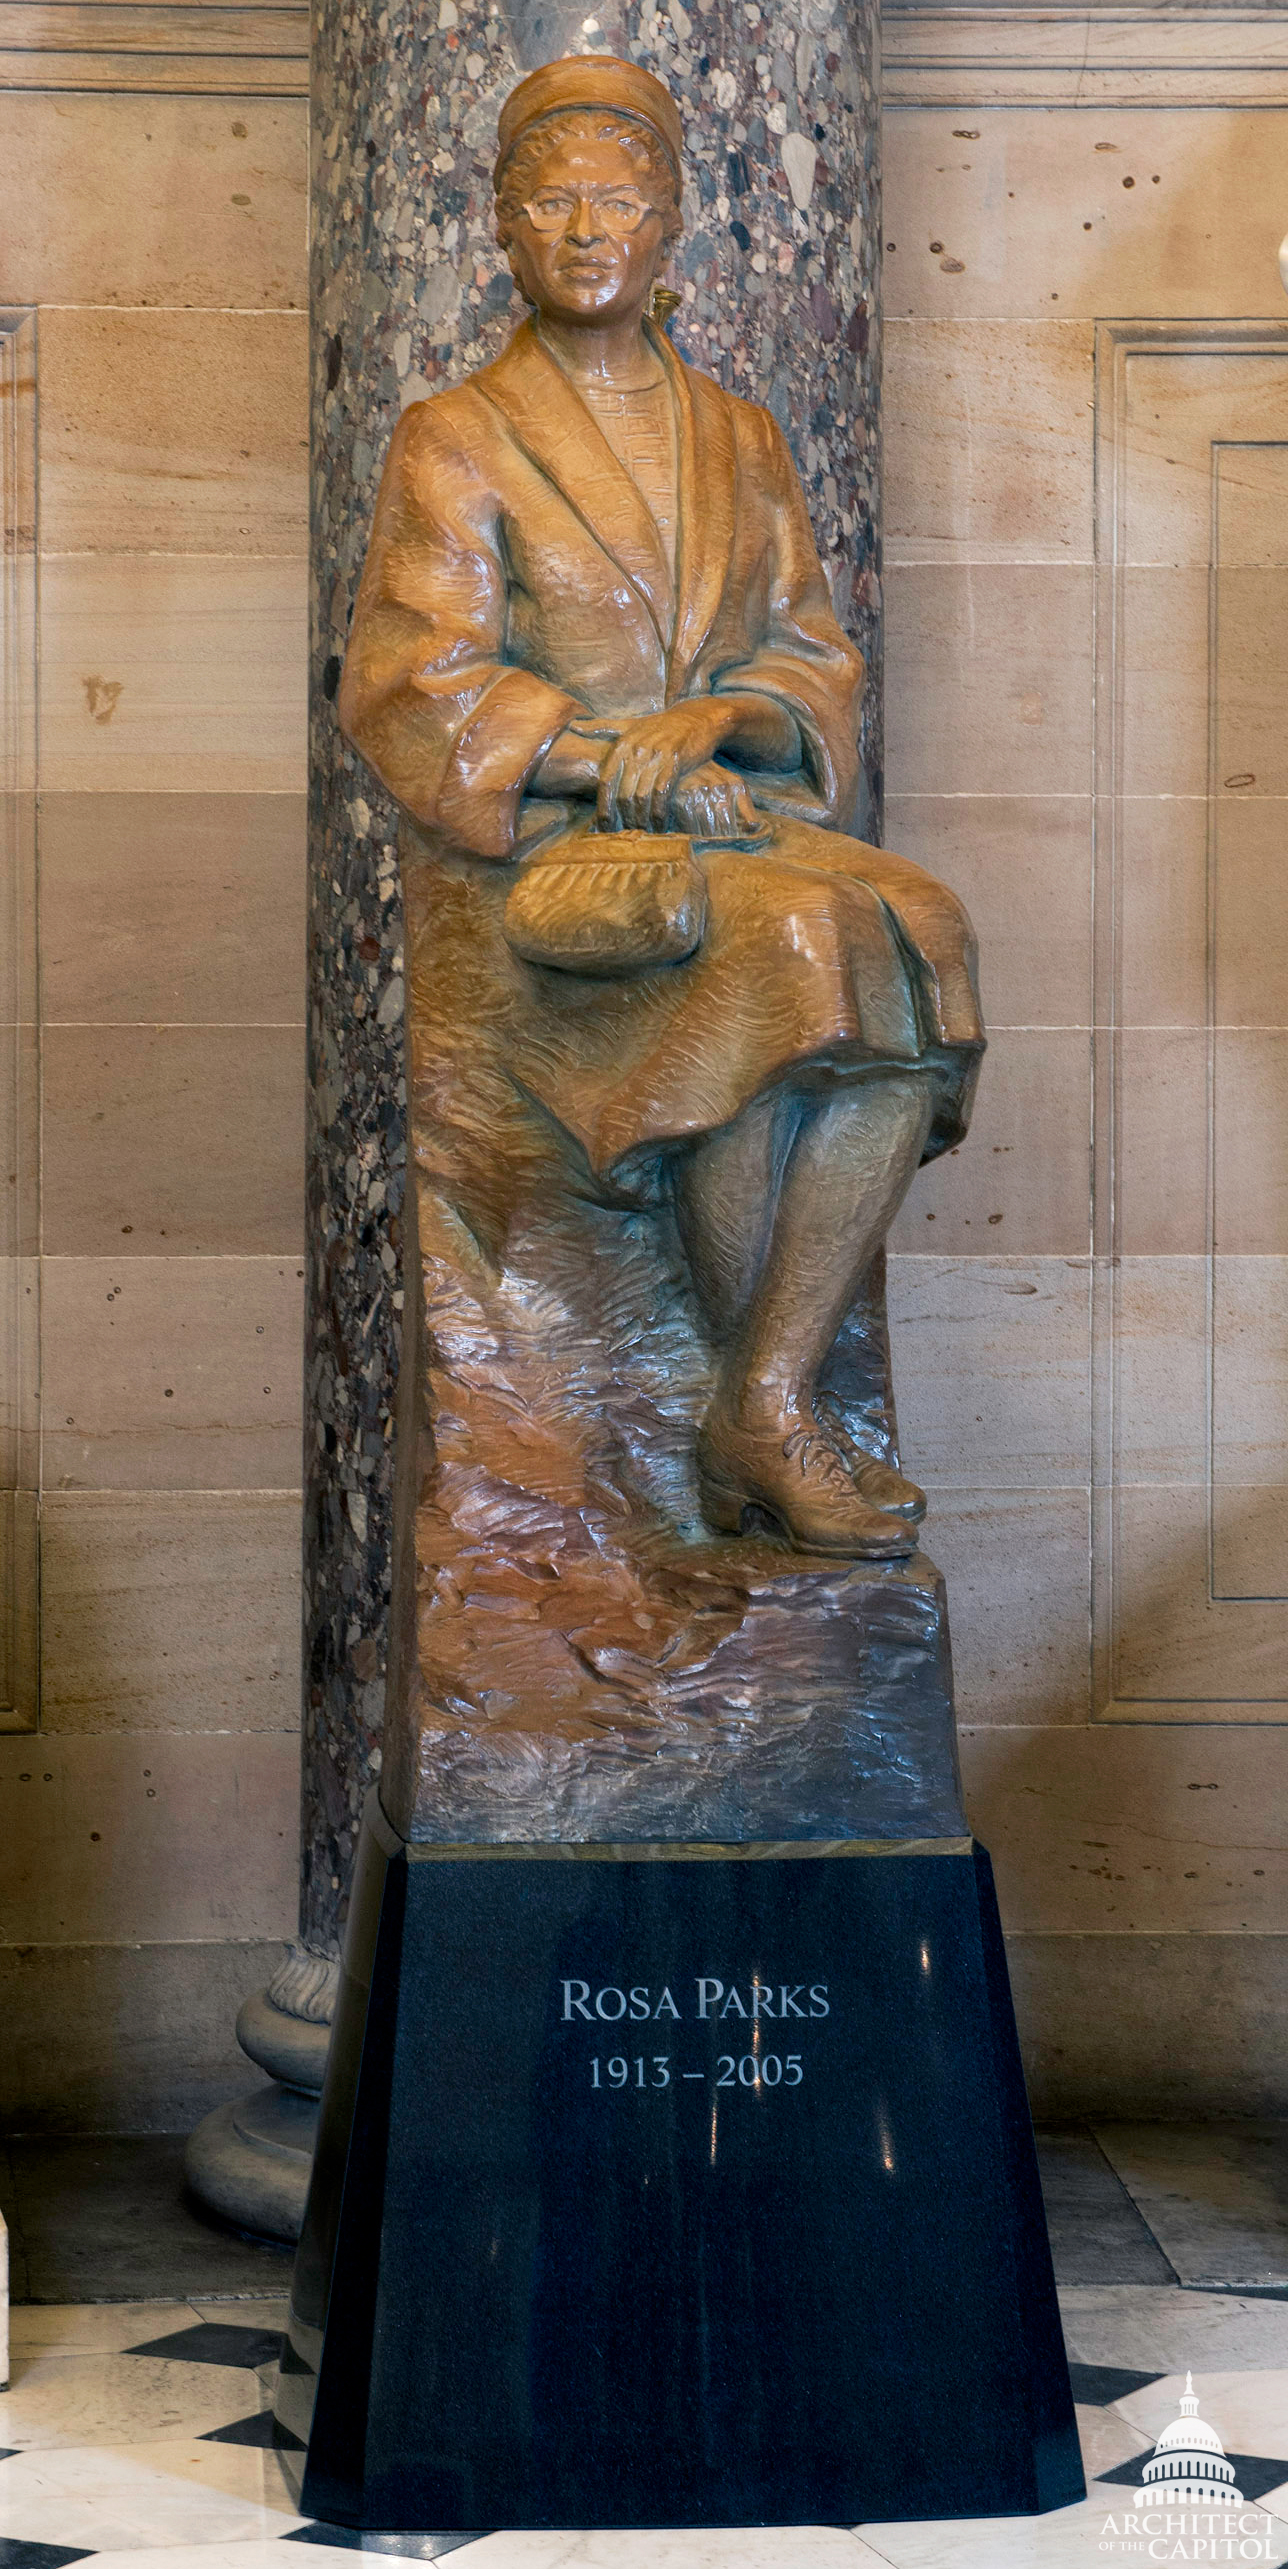 2013 : Rosa Parks Honored With Bronze Statue in U.S. Capitol